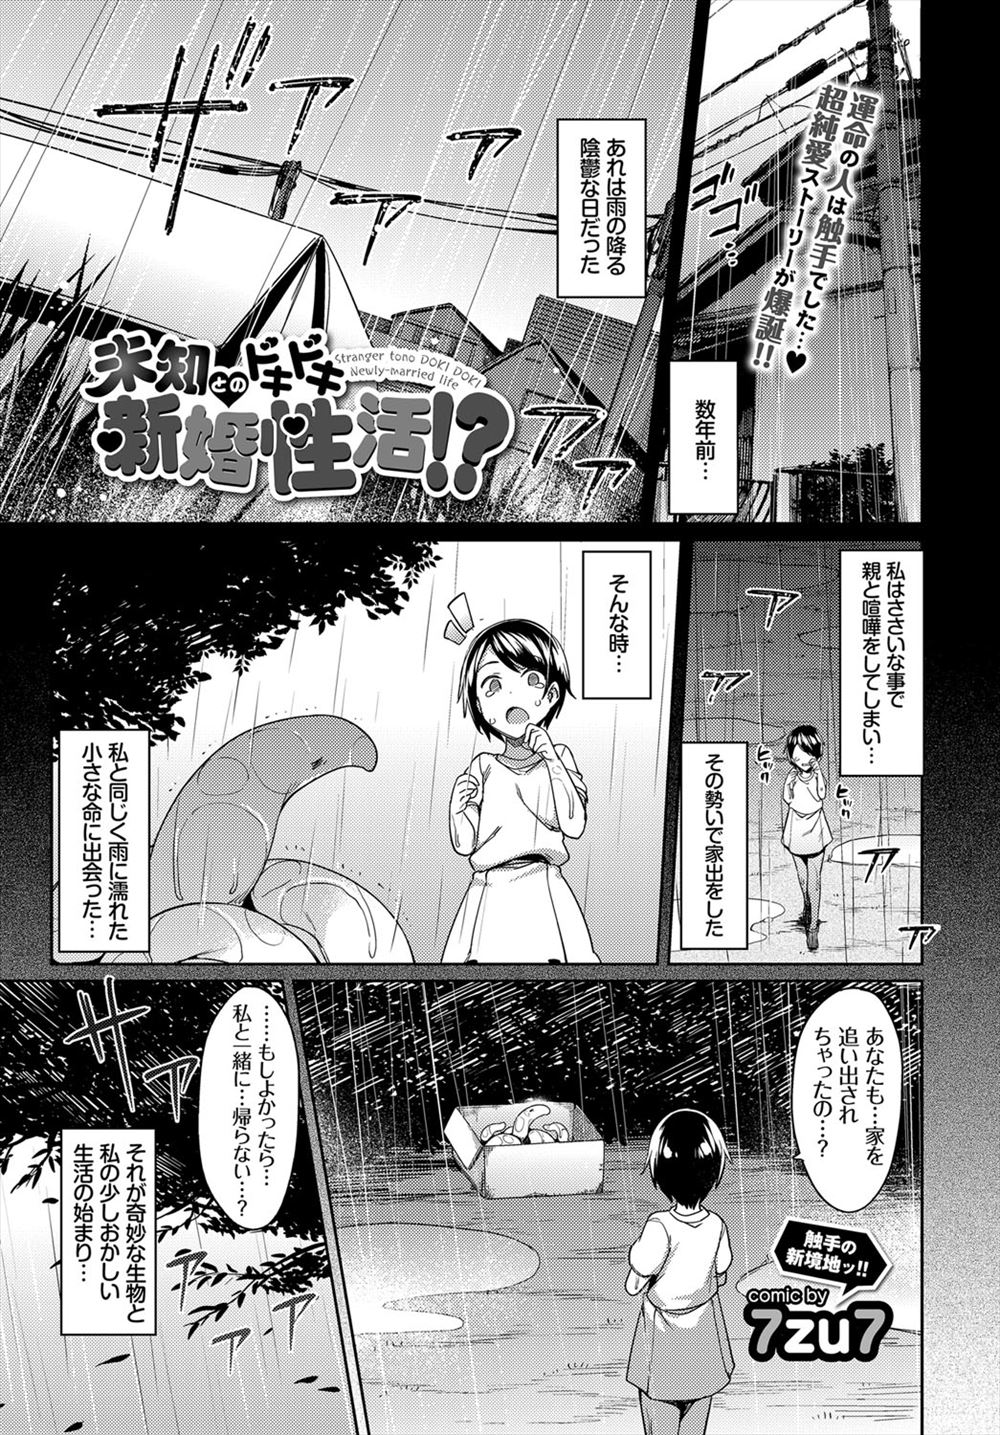 【エロ漫画】雨の降る中女の子が奇妙な触手のような生物を家に持ち帰り、数十年触手のような生き物は言葉を話すようになり、子作りセックスもしちゃう!